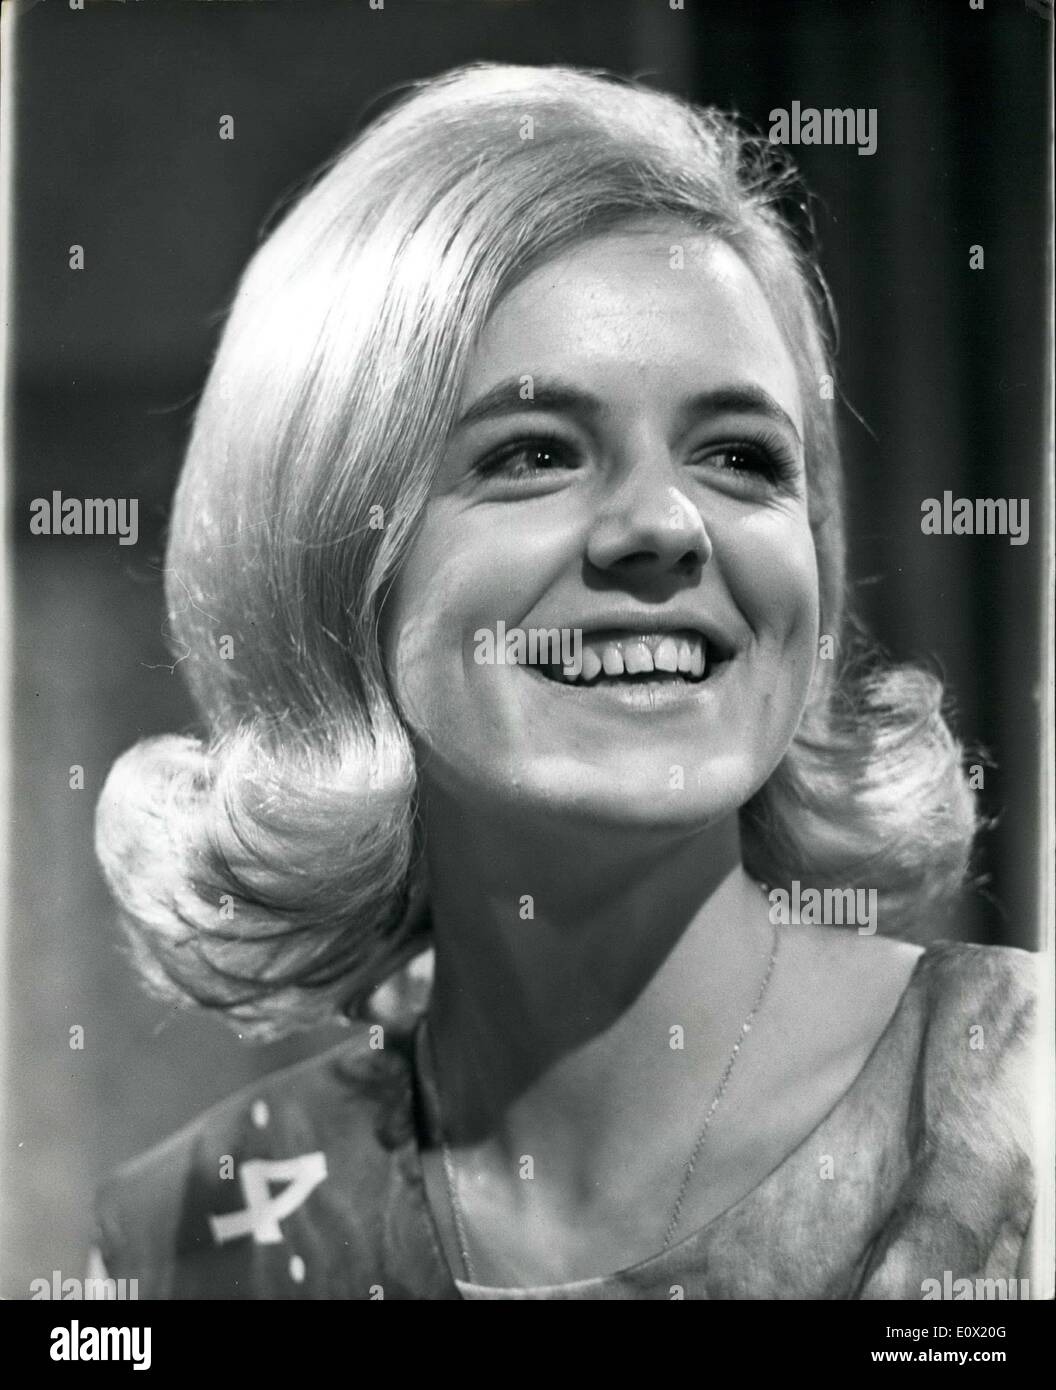 Dec. 15, 1964 - Judi Wins ''Search For A Star'' Contest.. Eighteen year old Judi Johnson - was judged as the winner of the Commercial TV contest called ''Search for a star''.. Judi left school to go on the stage - but the nearest she got to fame was when she made a pop record ''My Baby's Face'' - which according to Judi - was a ''complete disaster''... The contest, which lasted 12 weeks - was between 144 girls aged 16 - 23. - Stock Image